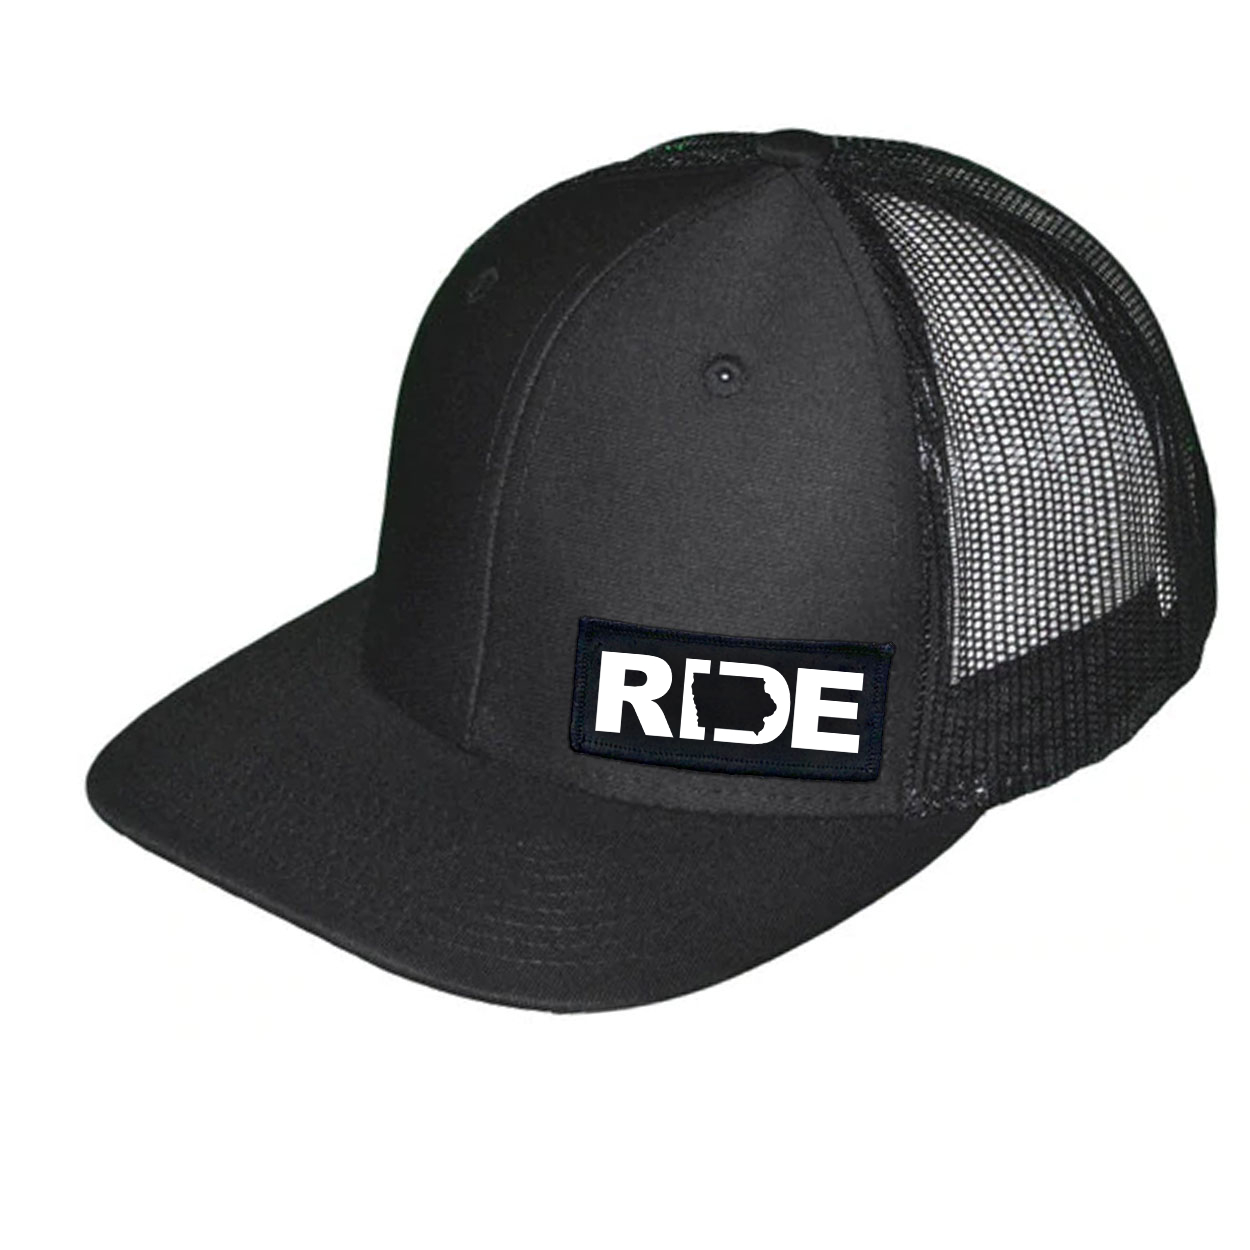 Ride Iowa Night Out Woven Patch Snapback Trucker Hat Black (White Logo)